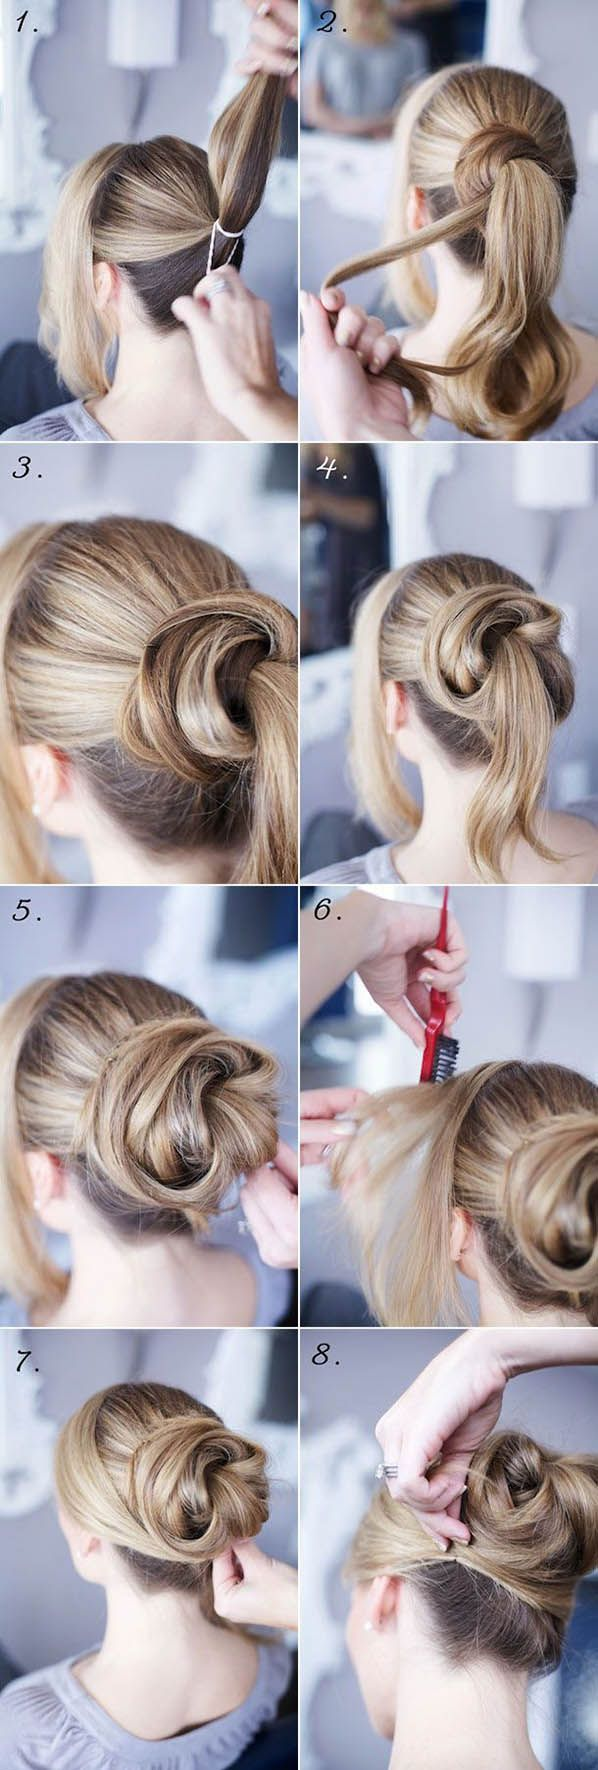 Hair Tutorials Diy Hair